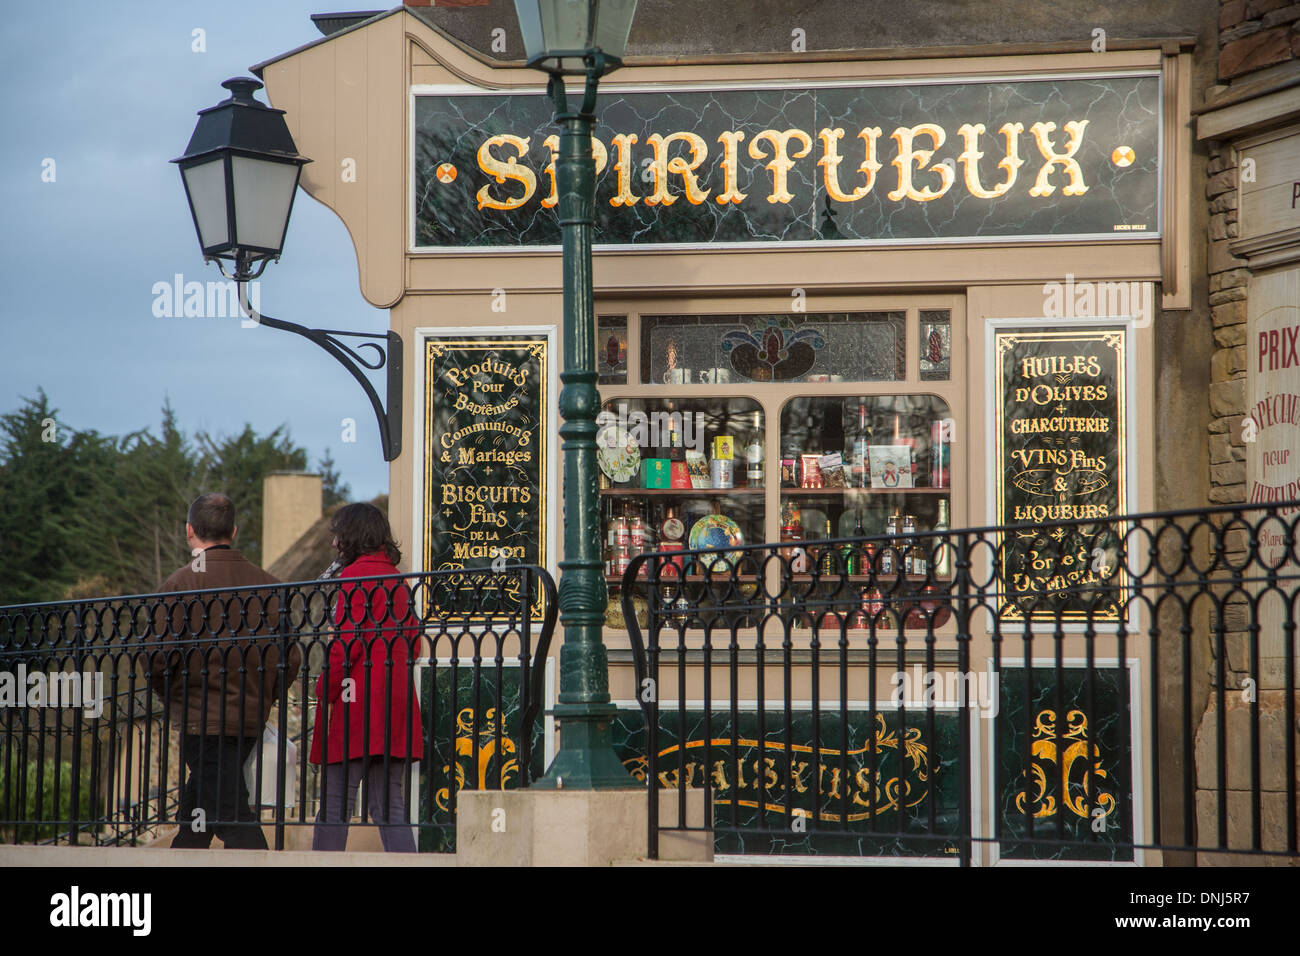 GROCERY SHOP, OLD-FASHIONED STREET DECOR WITH STORE FACADES FROM THE PREWAR PERIOD, MAISON DU BISCUIT, SORTOSVILLE - Stock Image